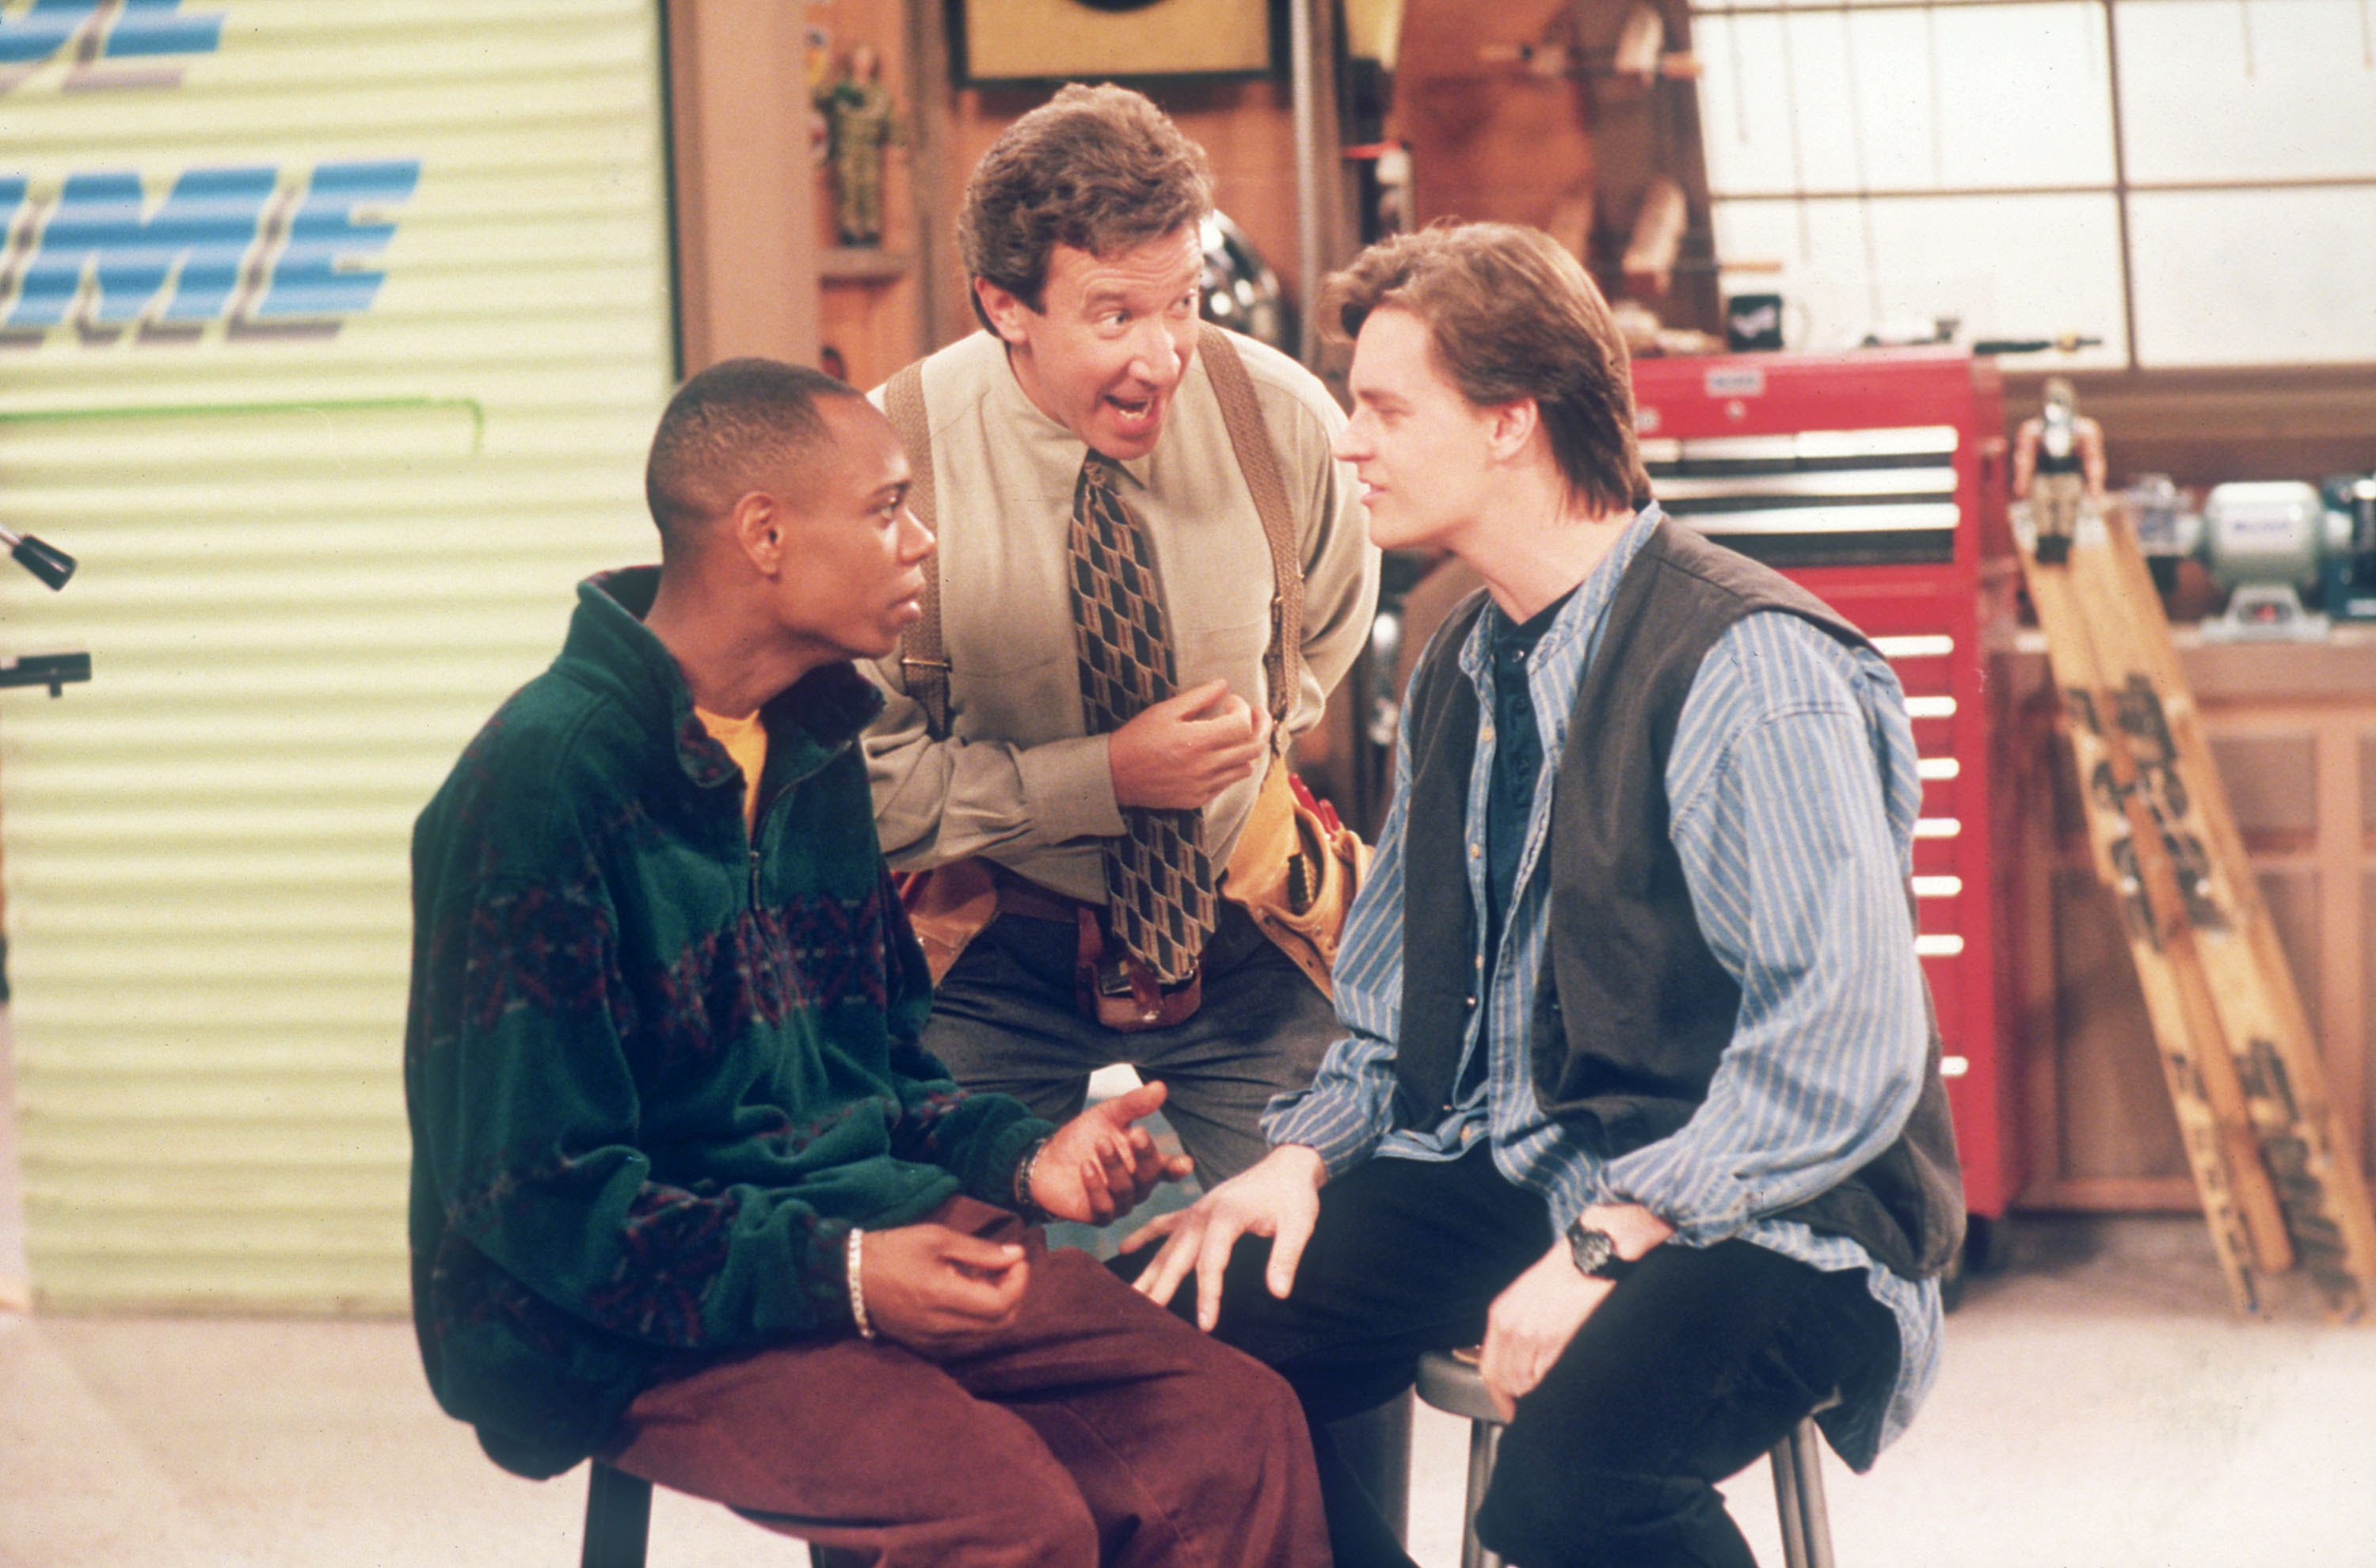 How To Be Beautiful: Home Improvement Cast And Crew Images